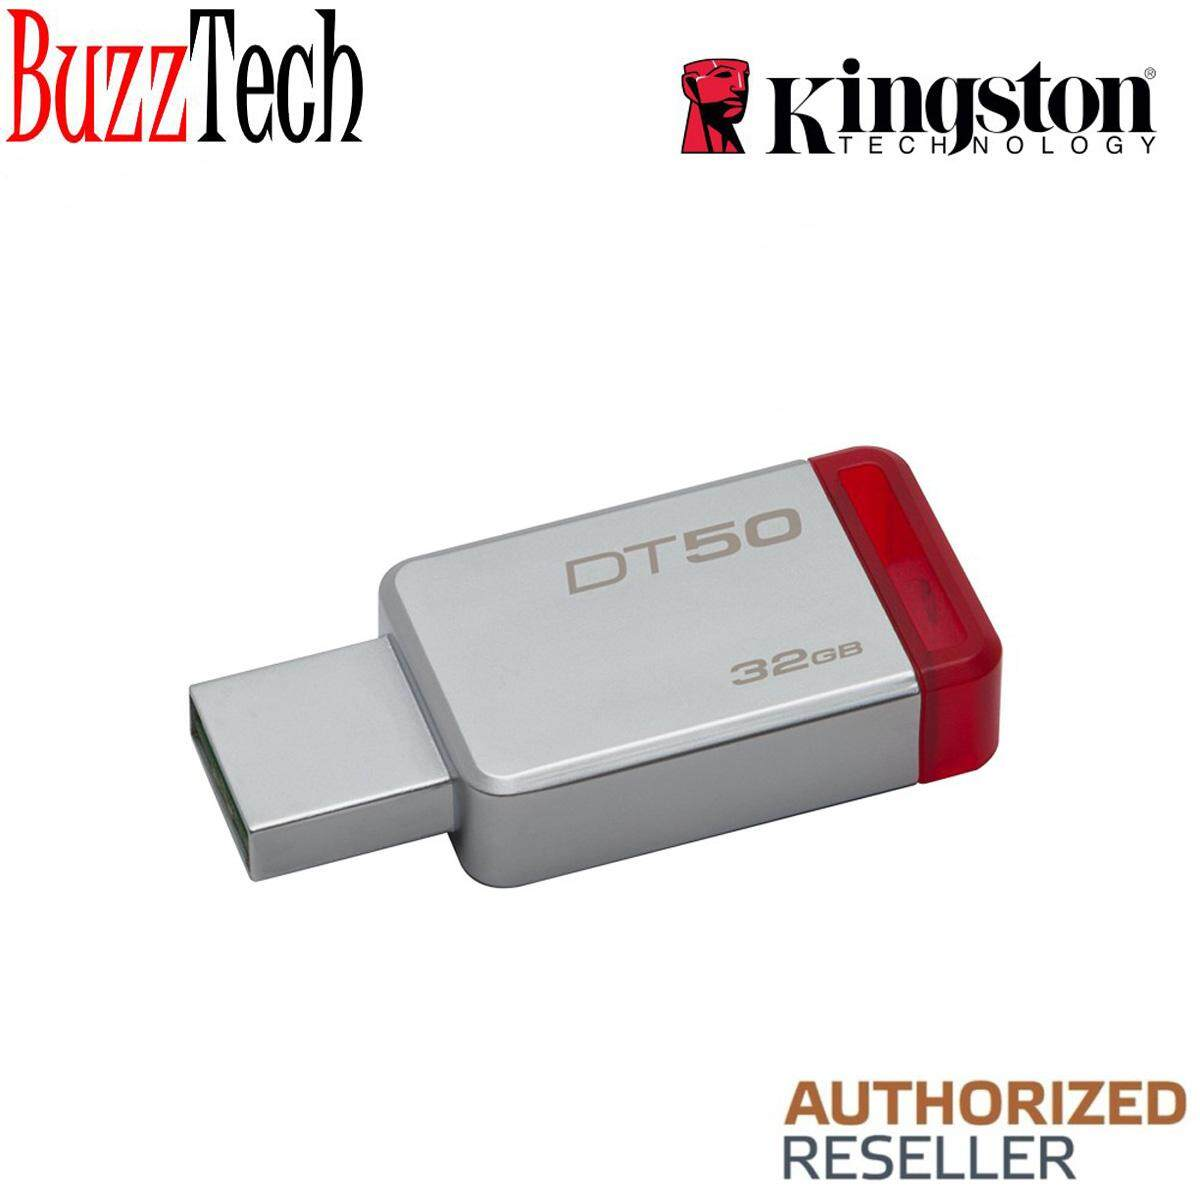 BuzzTech Kingston DataTraveler DT50 32GB USB Drive/ Pendrive USB3.1 (100% Original)